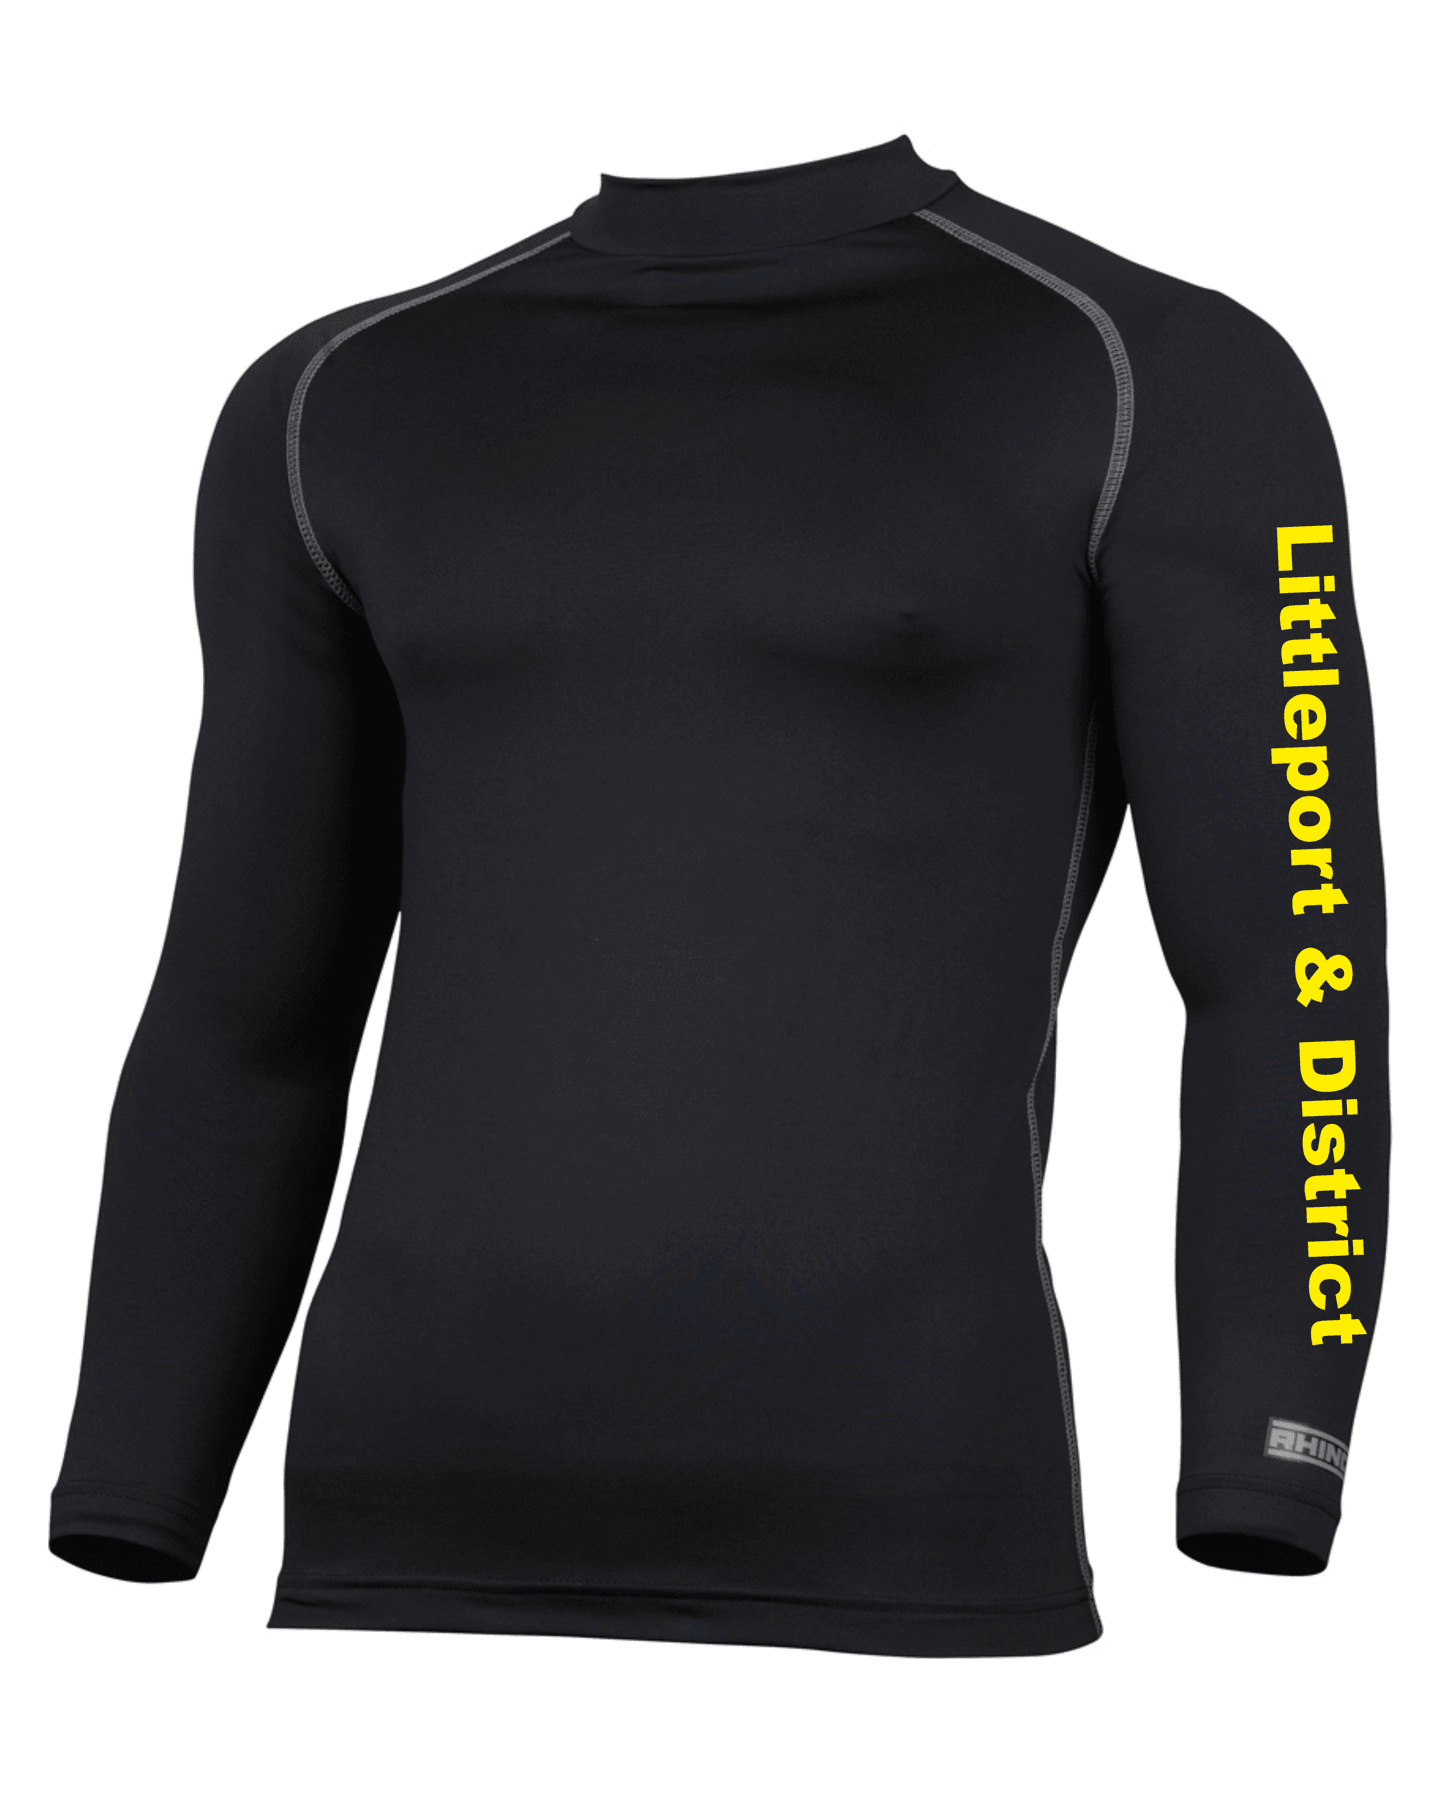 Littleport & District Pony Club – Base Layer